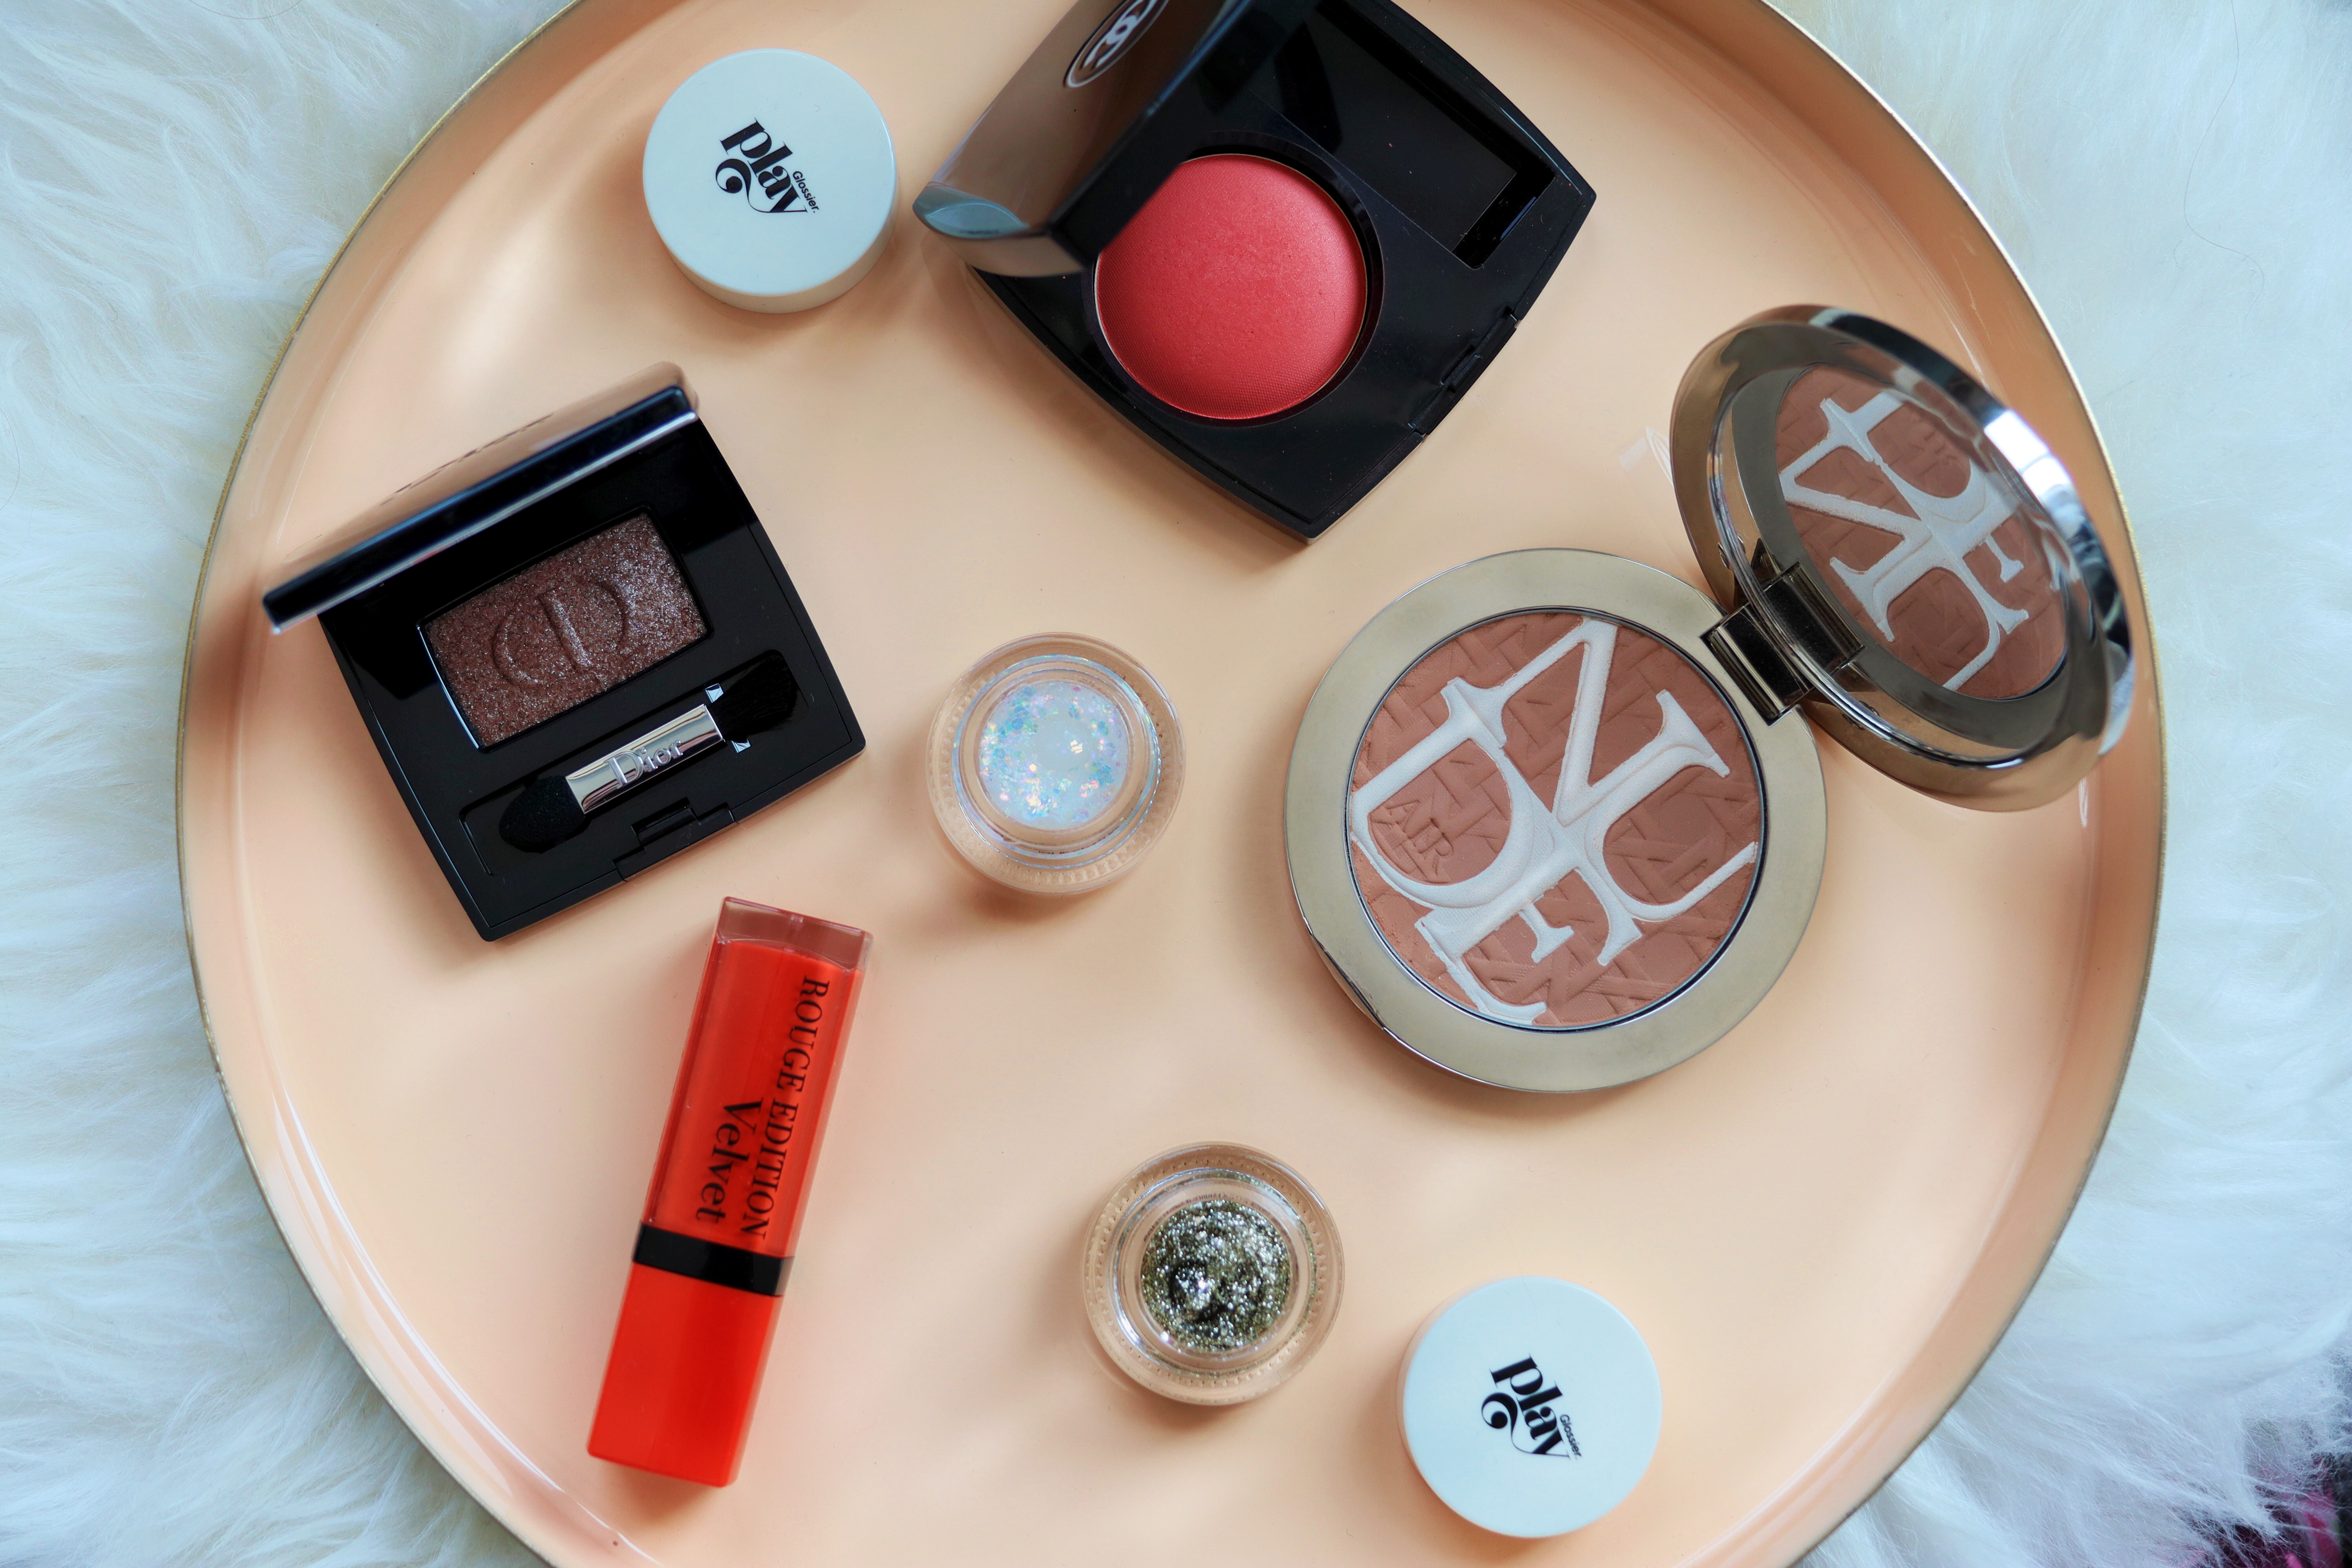 Image taken from above (birds eye view) of makeup set up on a peach tray. Tray is sat on a sheep skin rug. Makeup is formed to show makeup looks that can be created using different products. A bright red lipstick, glittery eyeshadow compact, two round pots of gel glitters and a bronzer in a silver compact with a mirror.